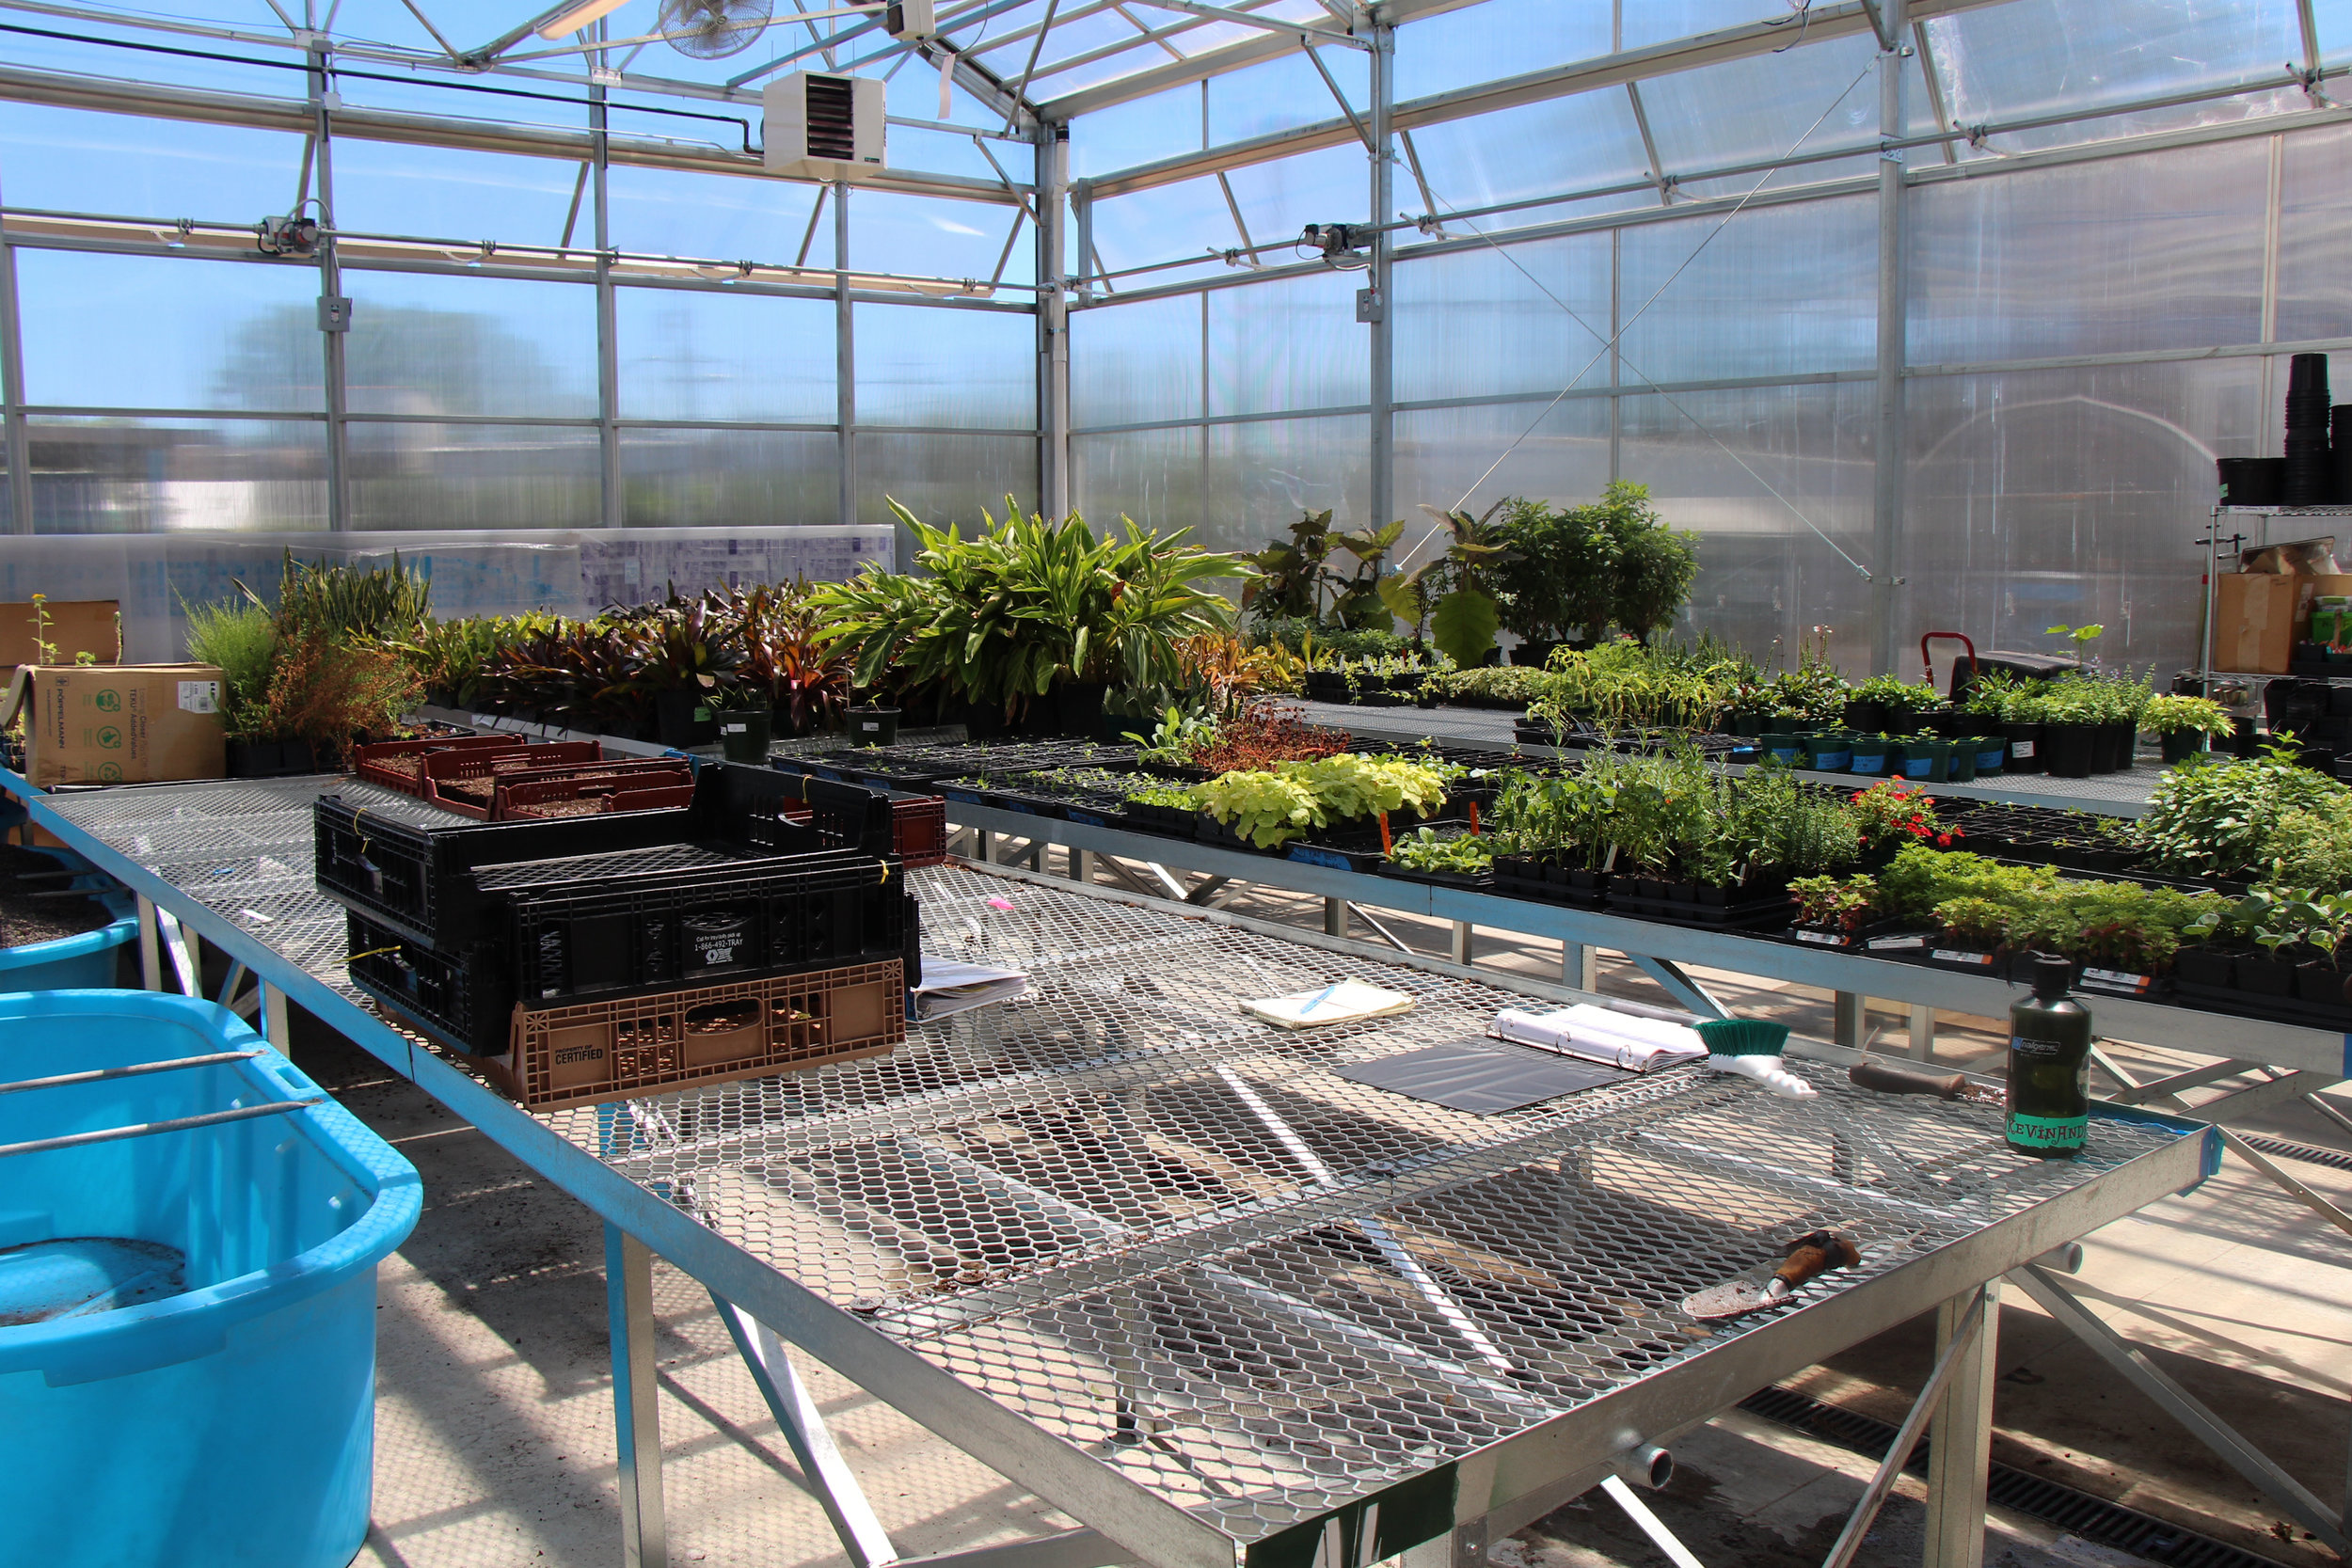 The Greenhouse is a 7,300 sq. ft.room where the growing processes start.